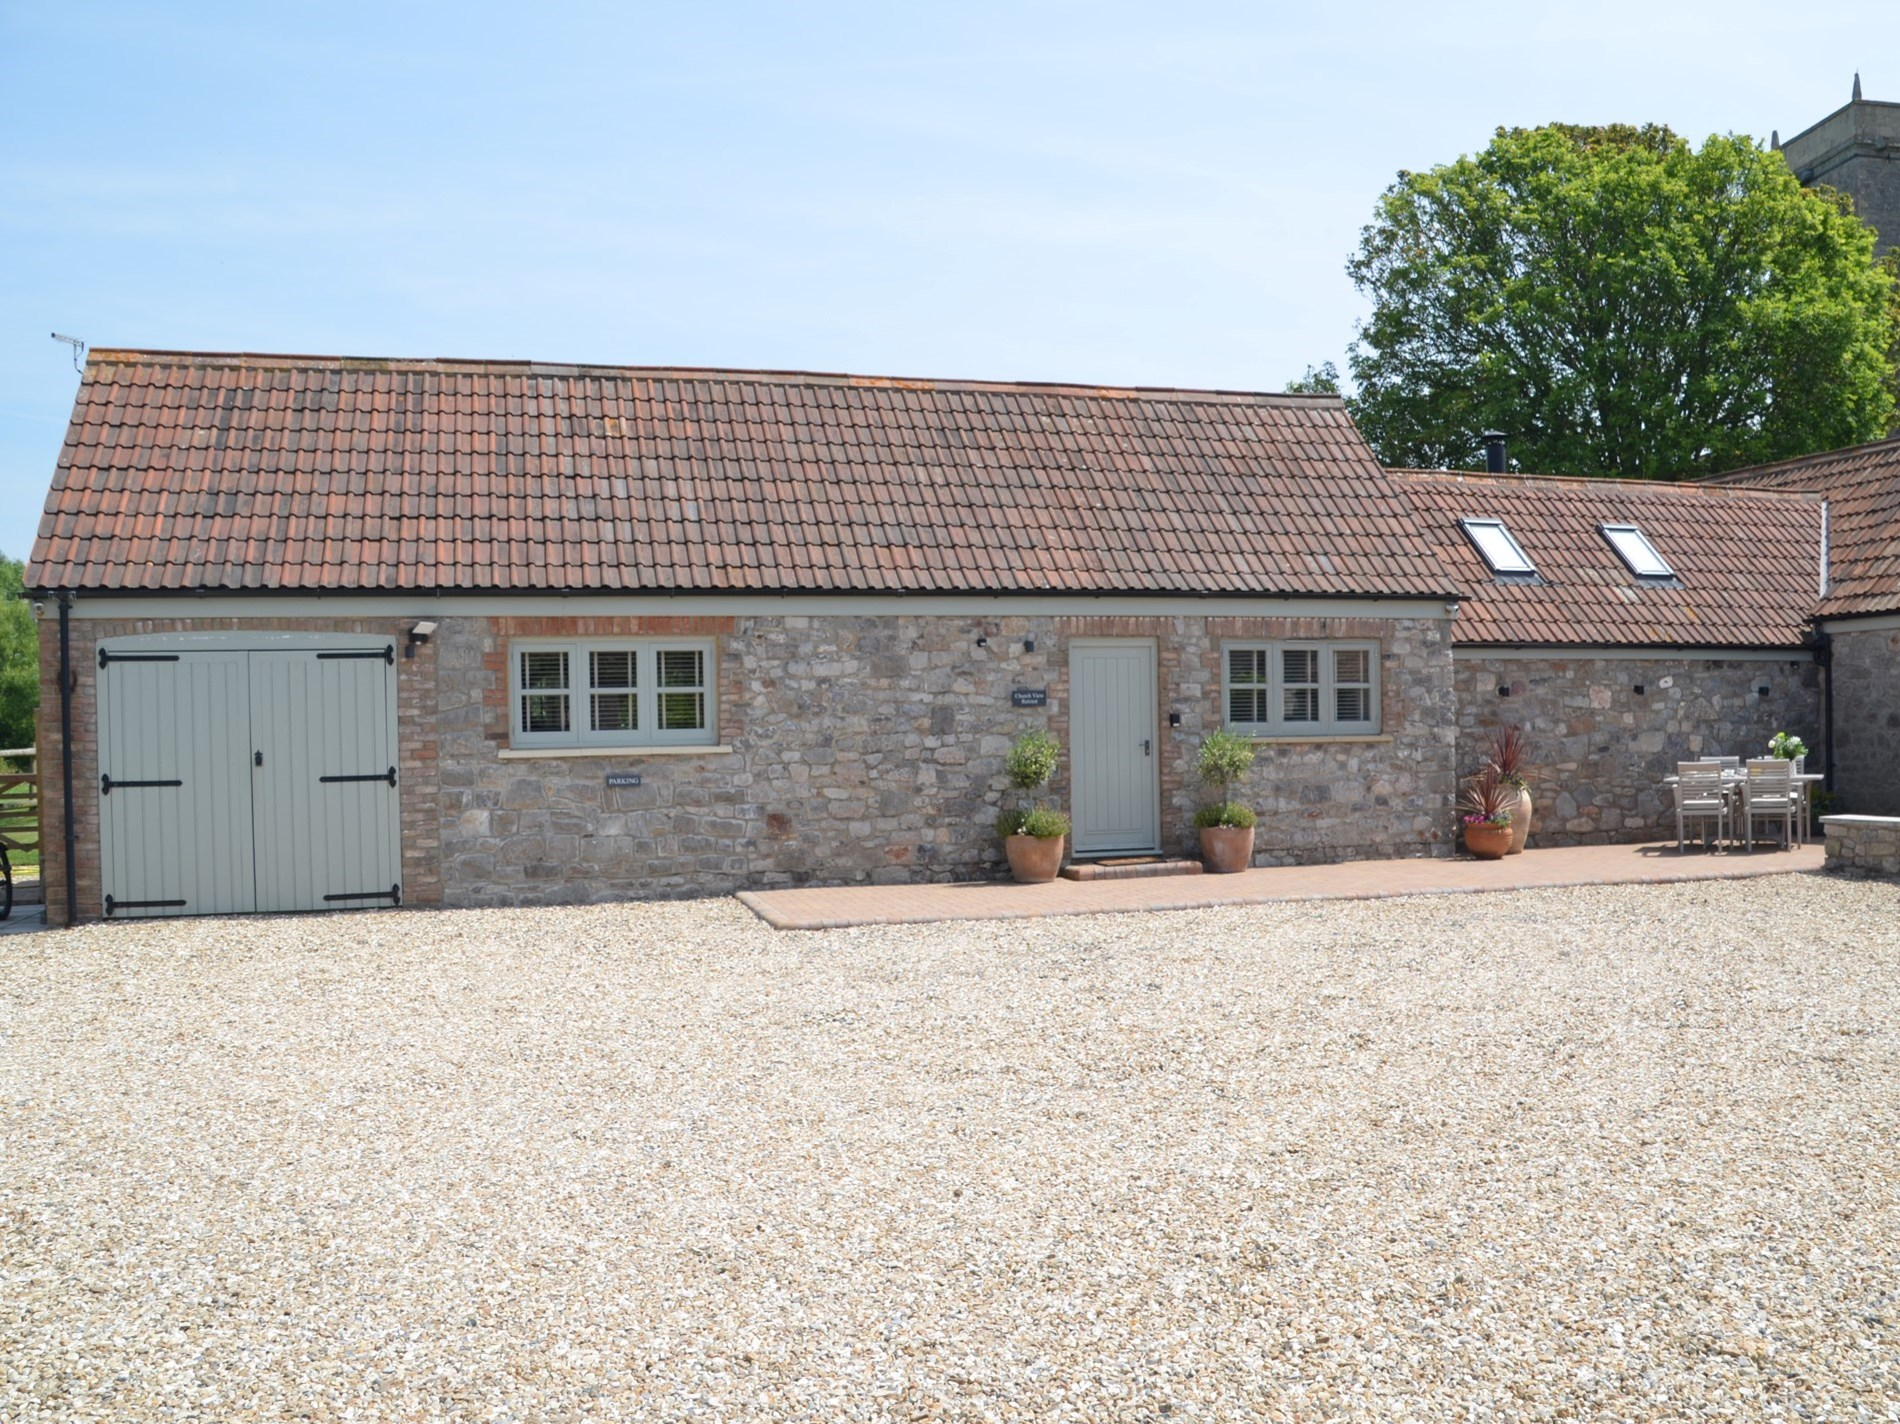 Looking towards this stunning studio barn conversion